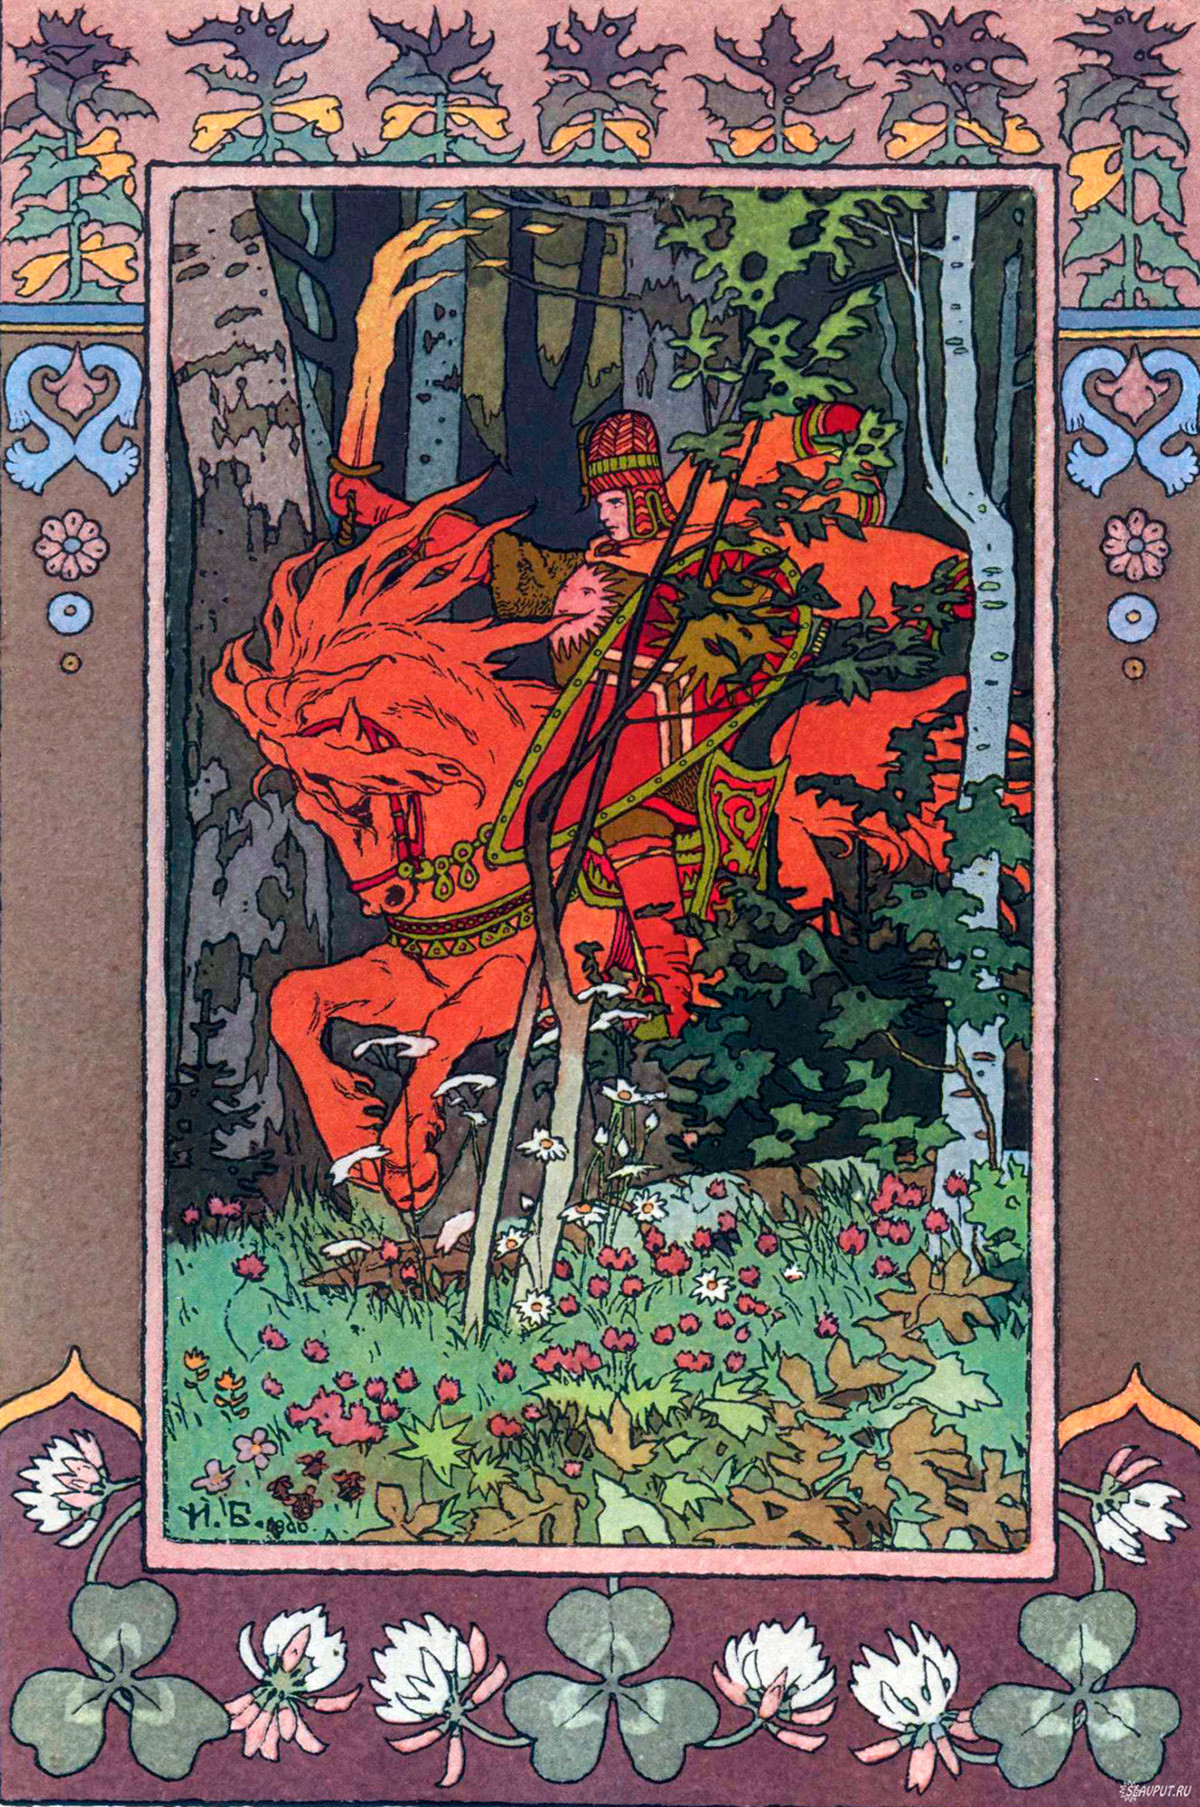 Ivan Bilibin's illustration for 'Vasilisa the Beautiful' tale